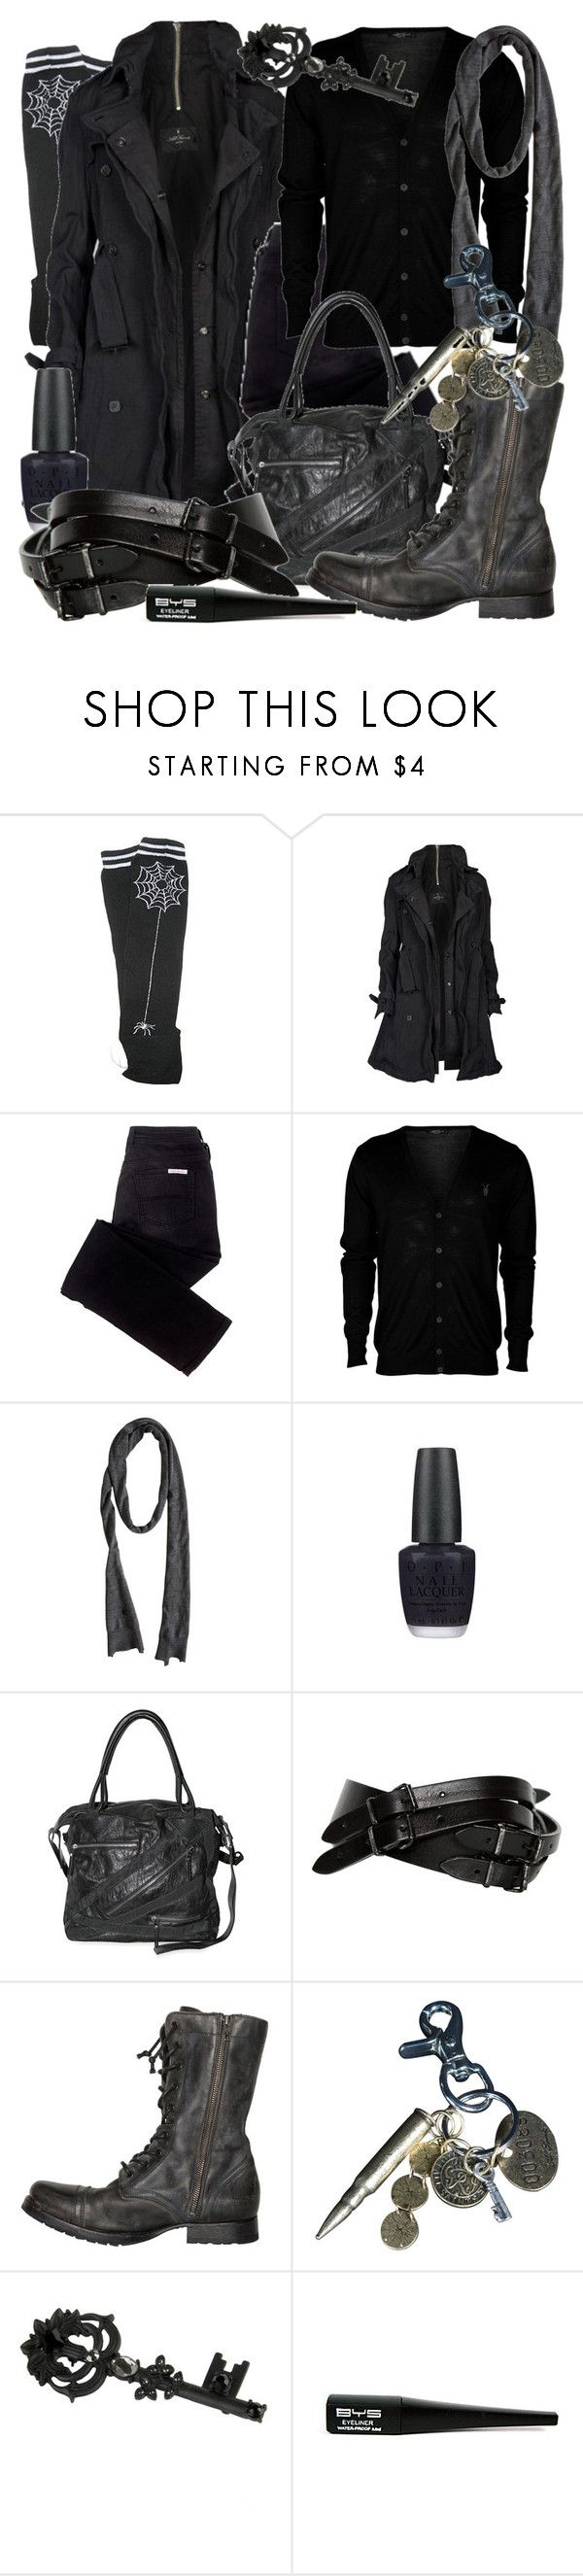 """""""Untitled"""" by astronautalina ❤ liked on Polyvore featuring AllSaints, sass & bide, OPI, Pauric Sweeney, Forever 21, black, all saints and opi"""